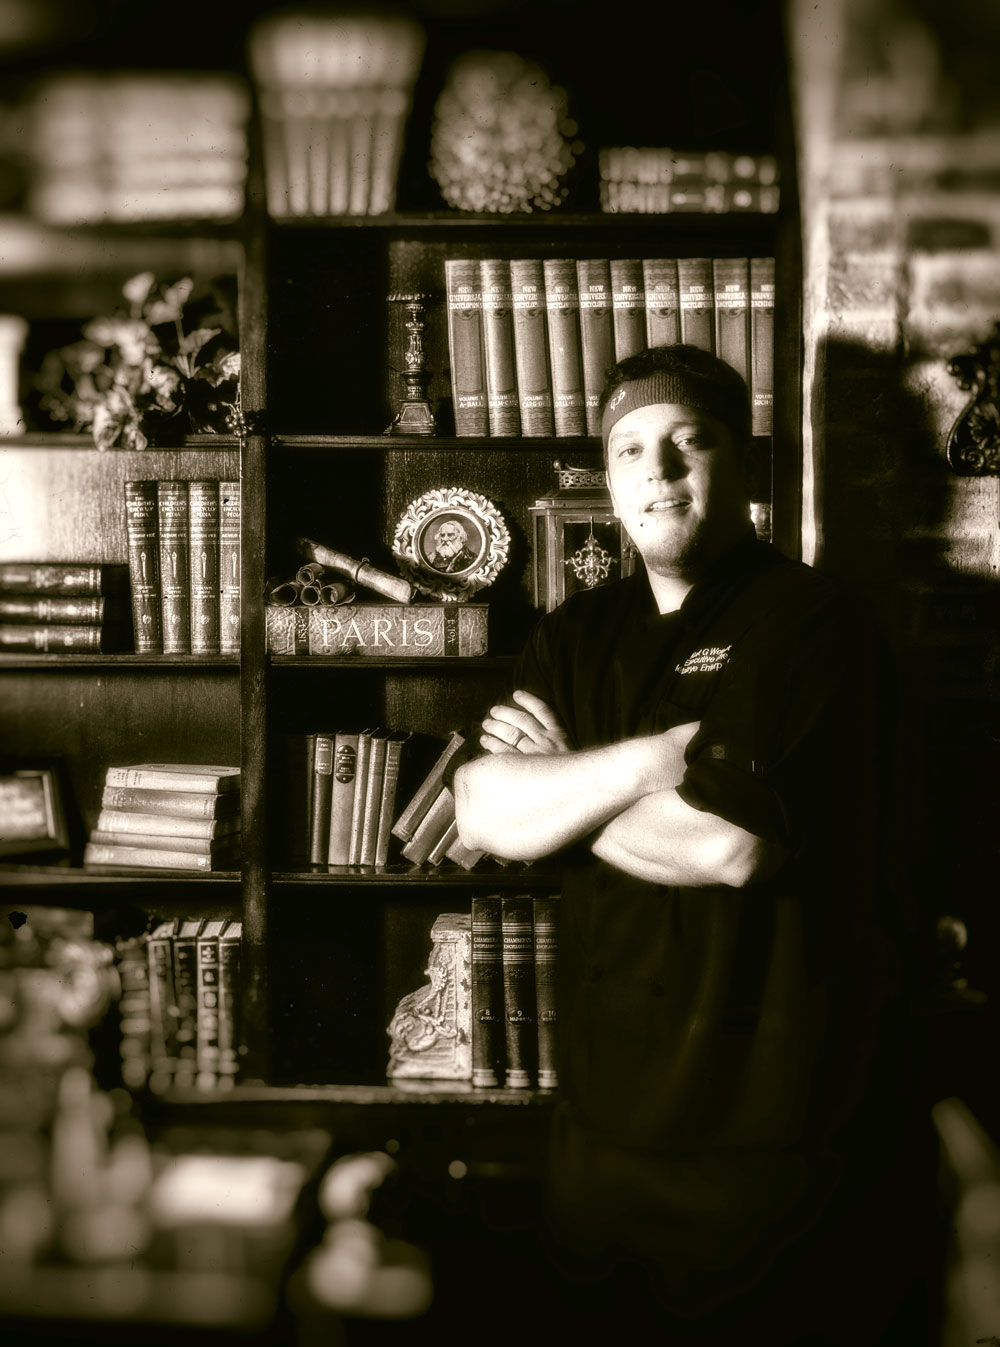 The Garlic Poet's Executive chef, Kurt Wewer